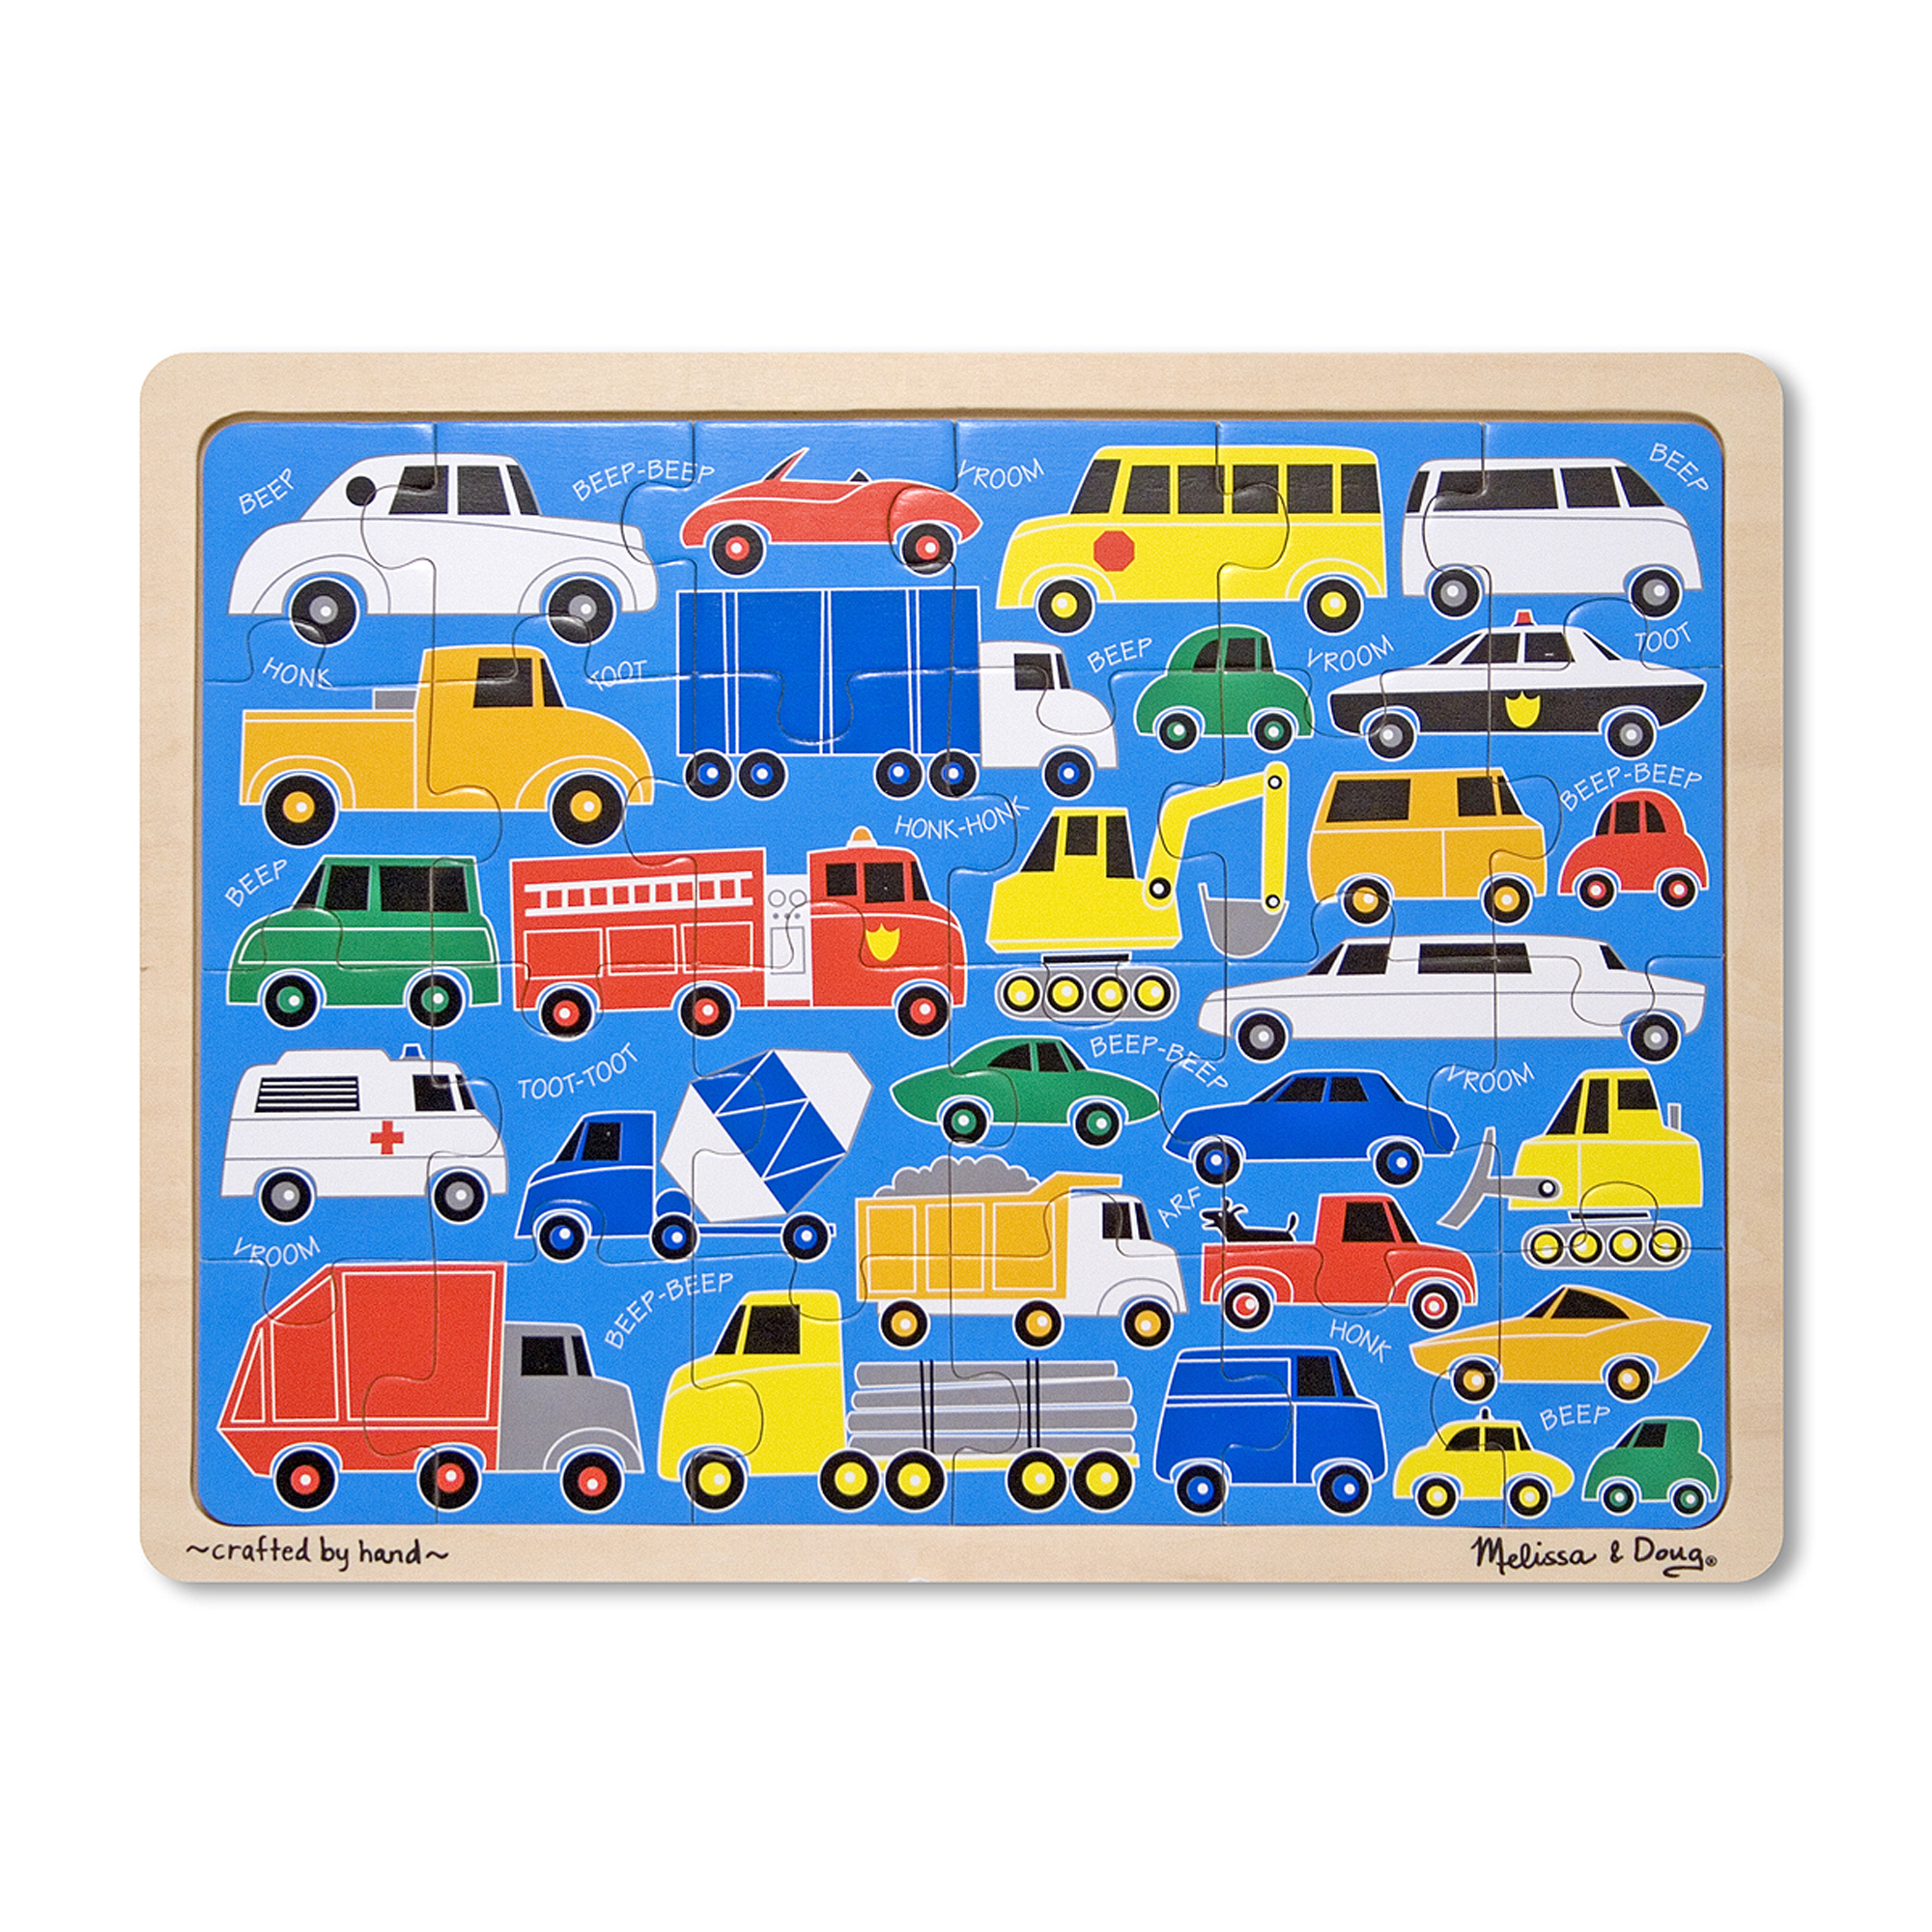 Beep Beep Wooden Jigsaw Puzzle  24 Pieces